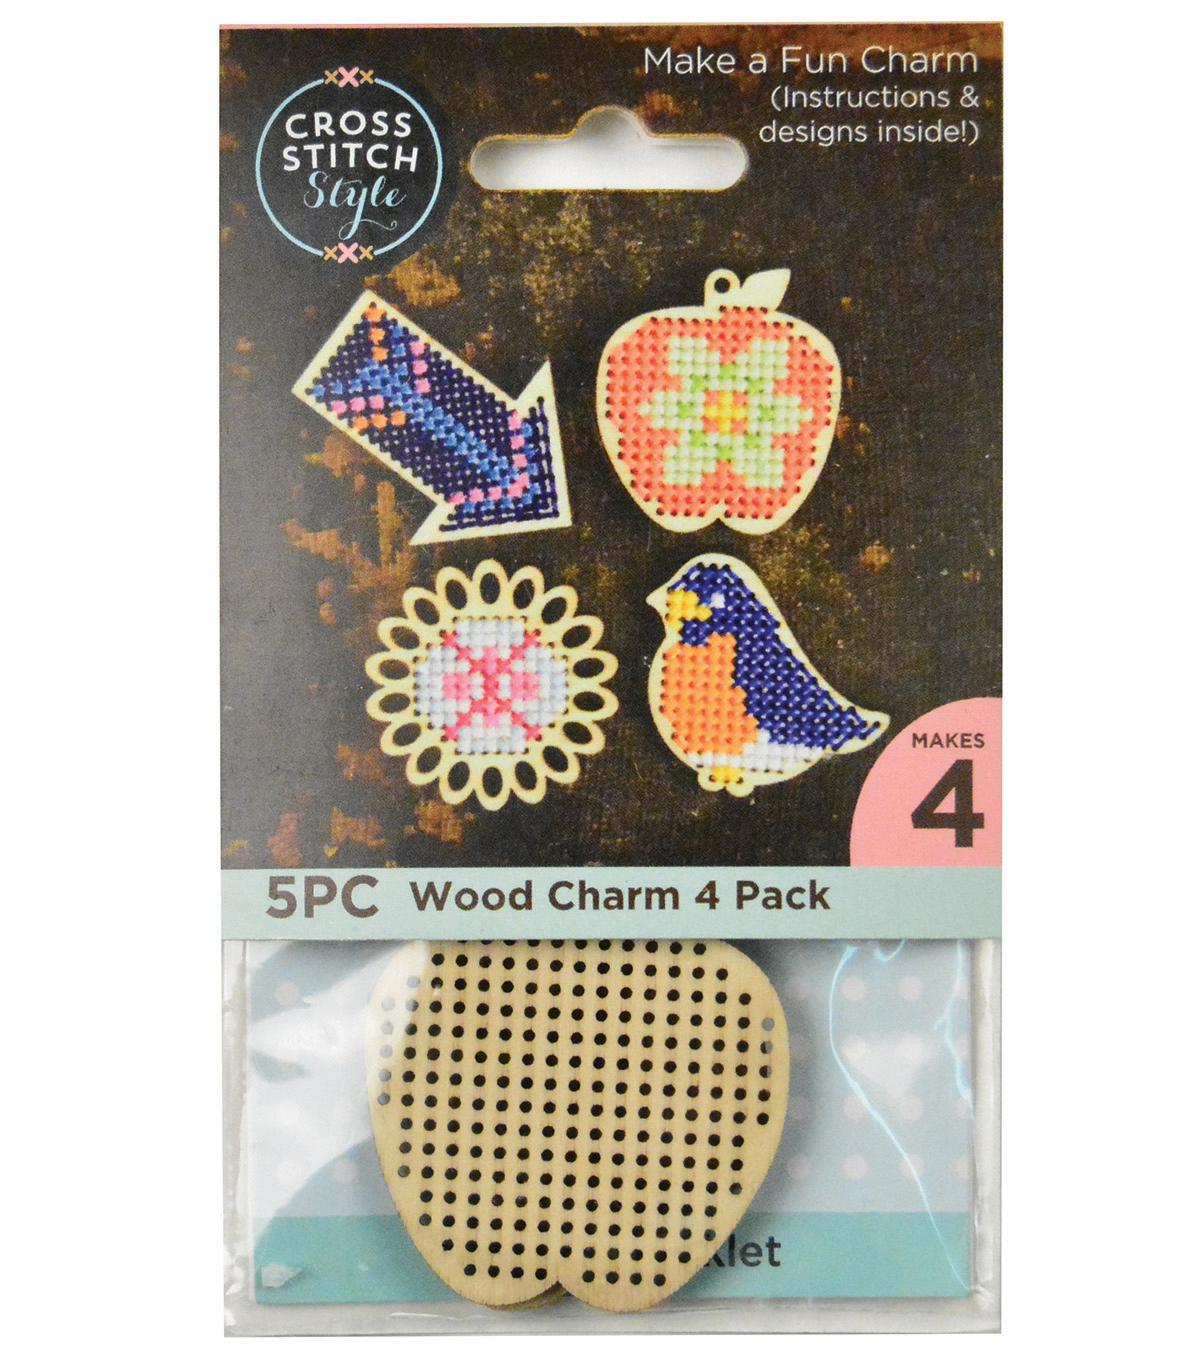 Cross Stitch Style 4 Pack Wood Charms-Bird, Apple, Arrow & Flower